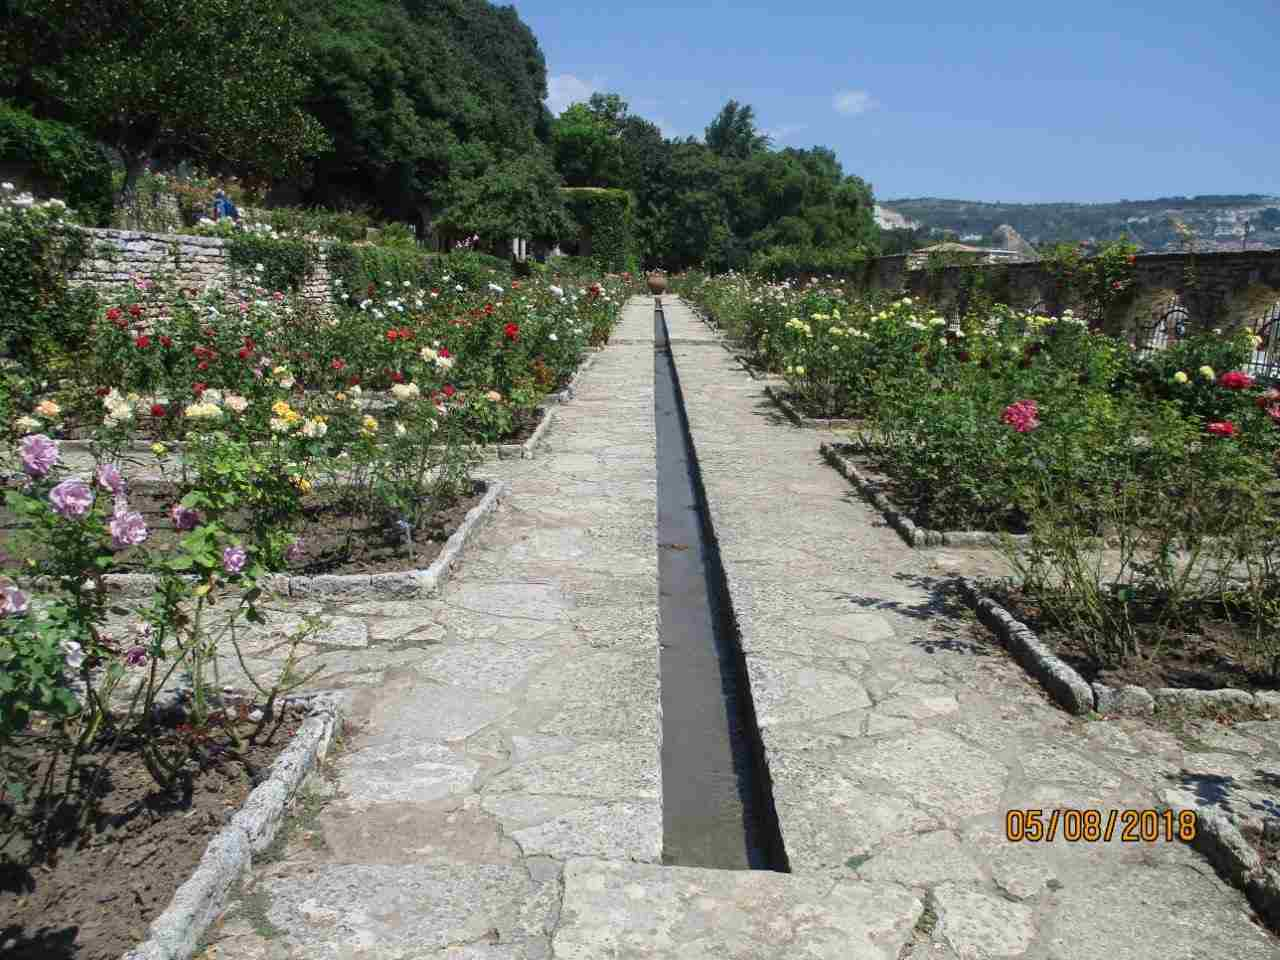 Long rill running through the large rose garden heading towards the Temple of Water.